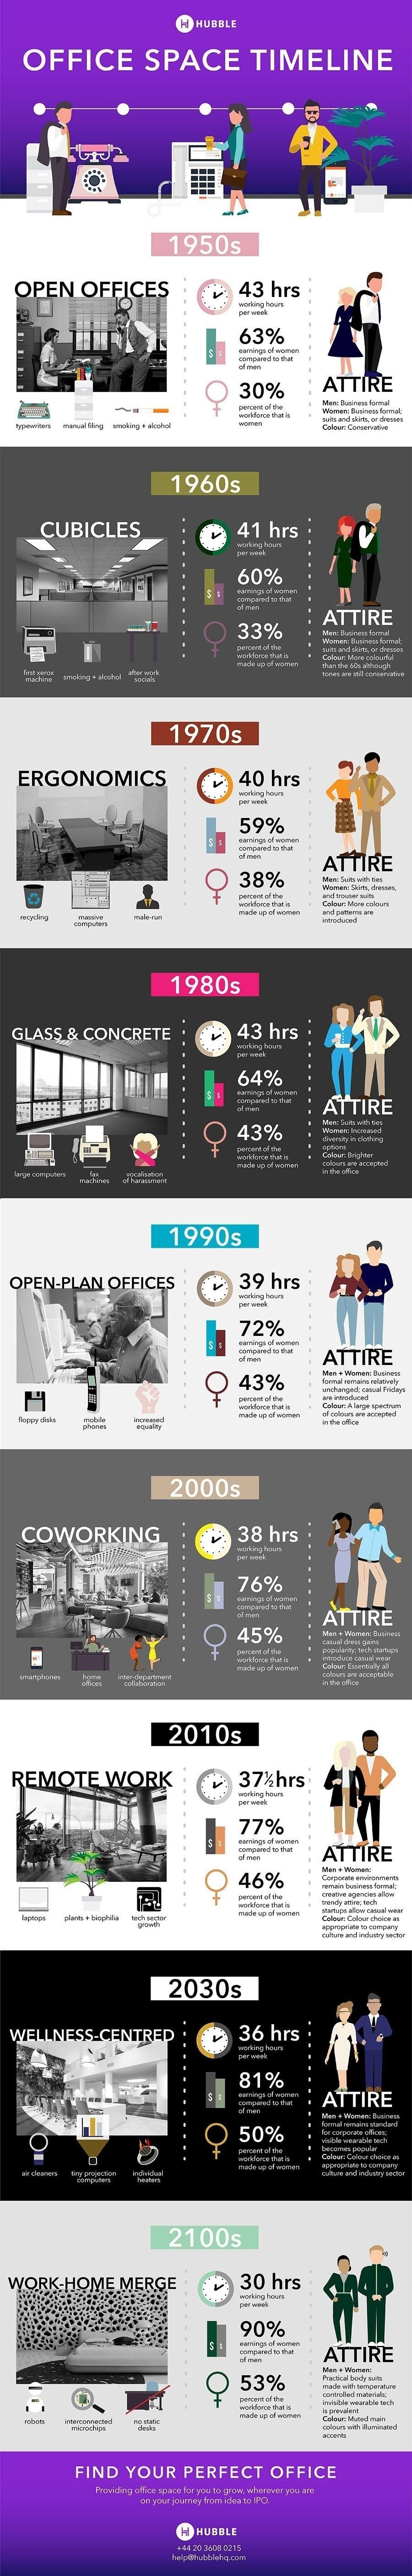 Office Space Timeline